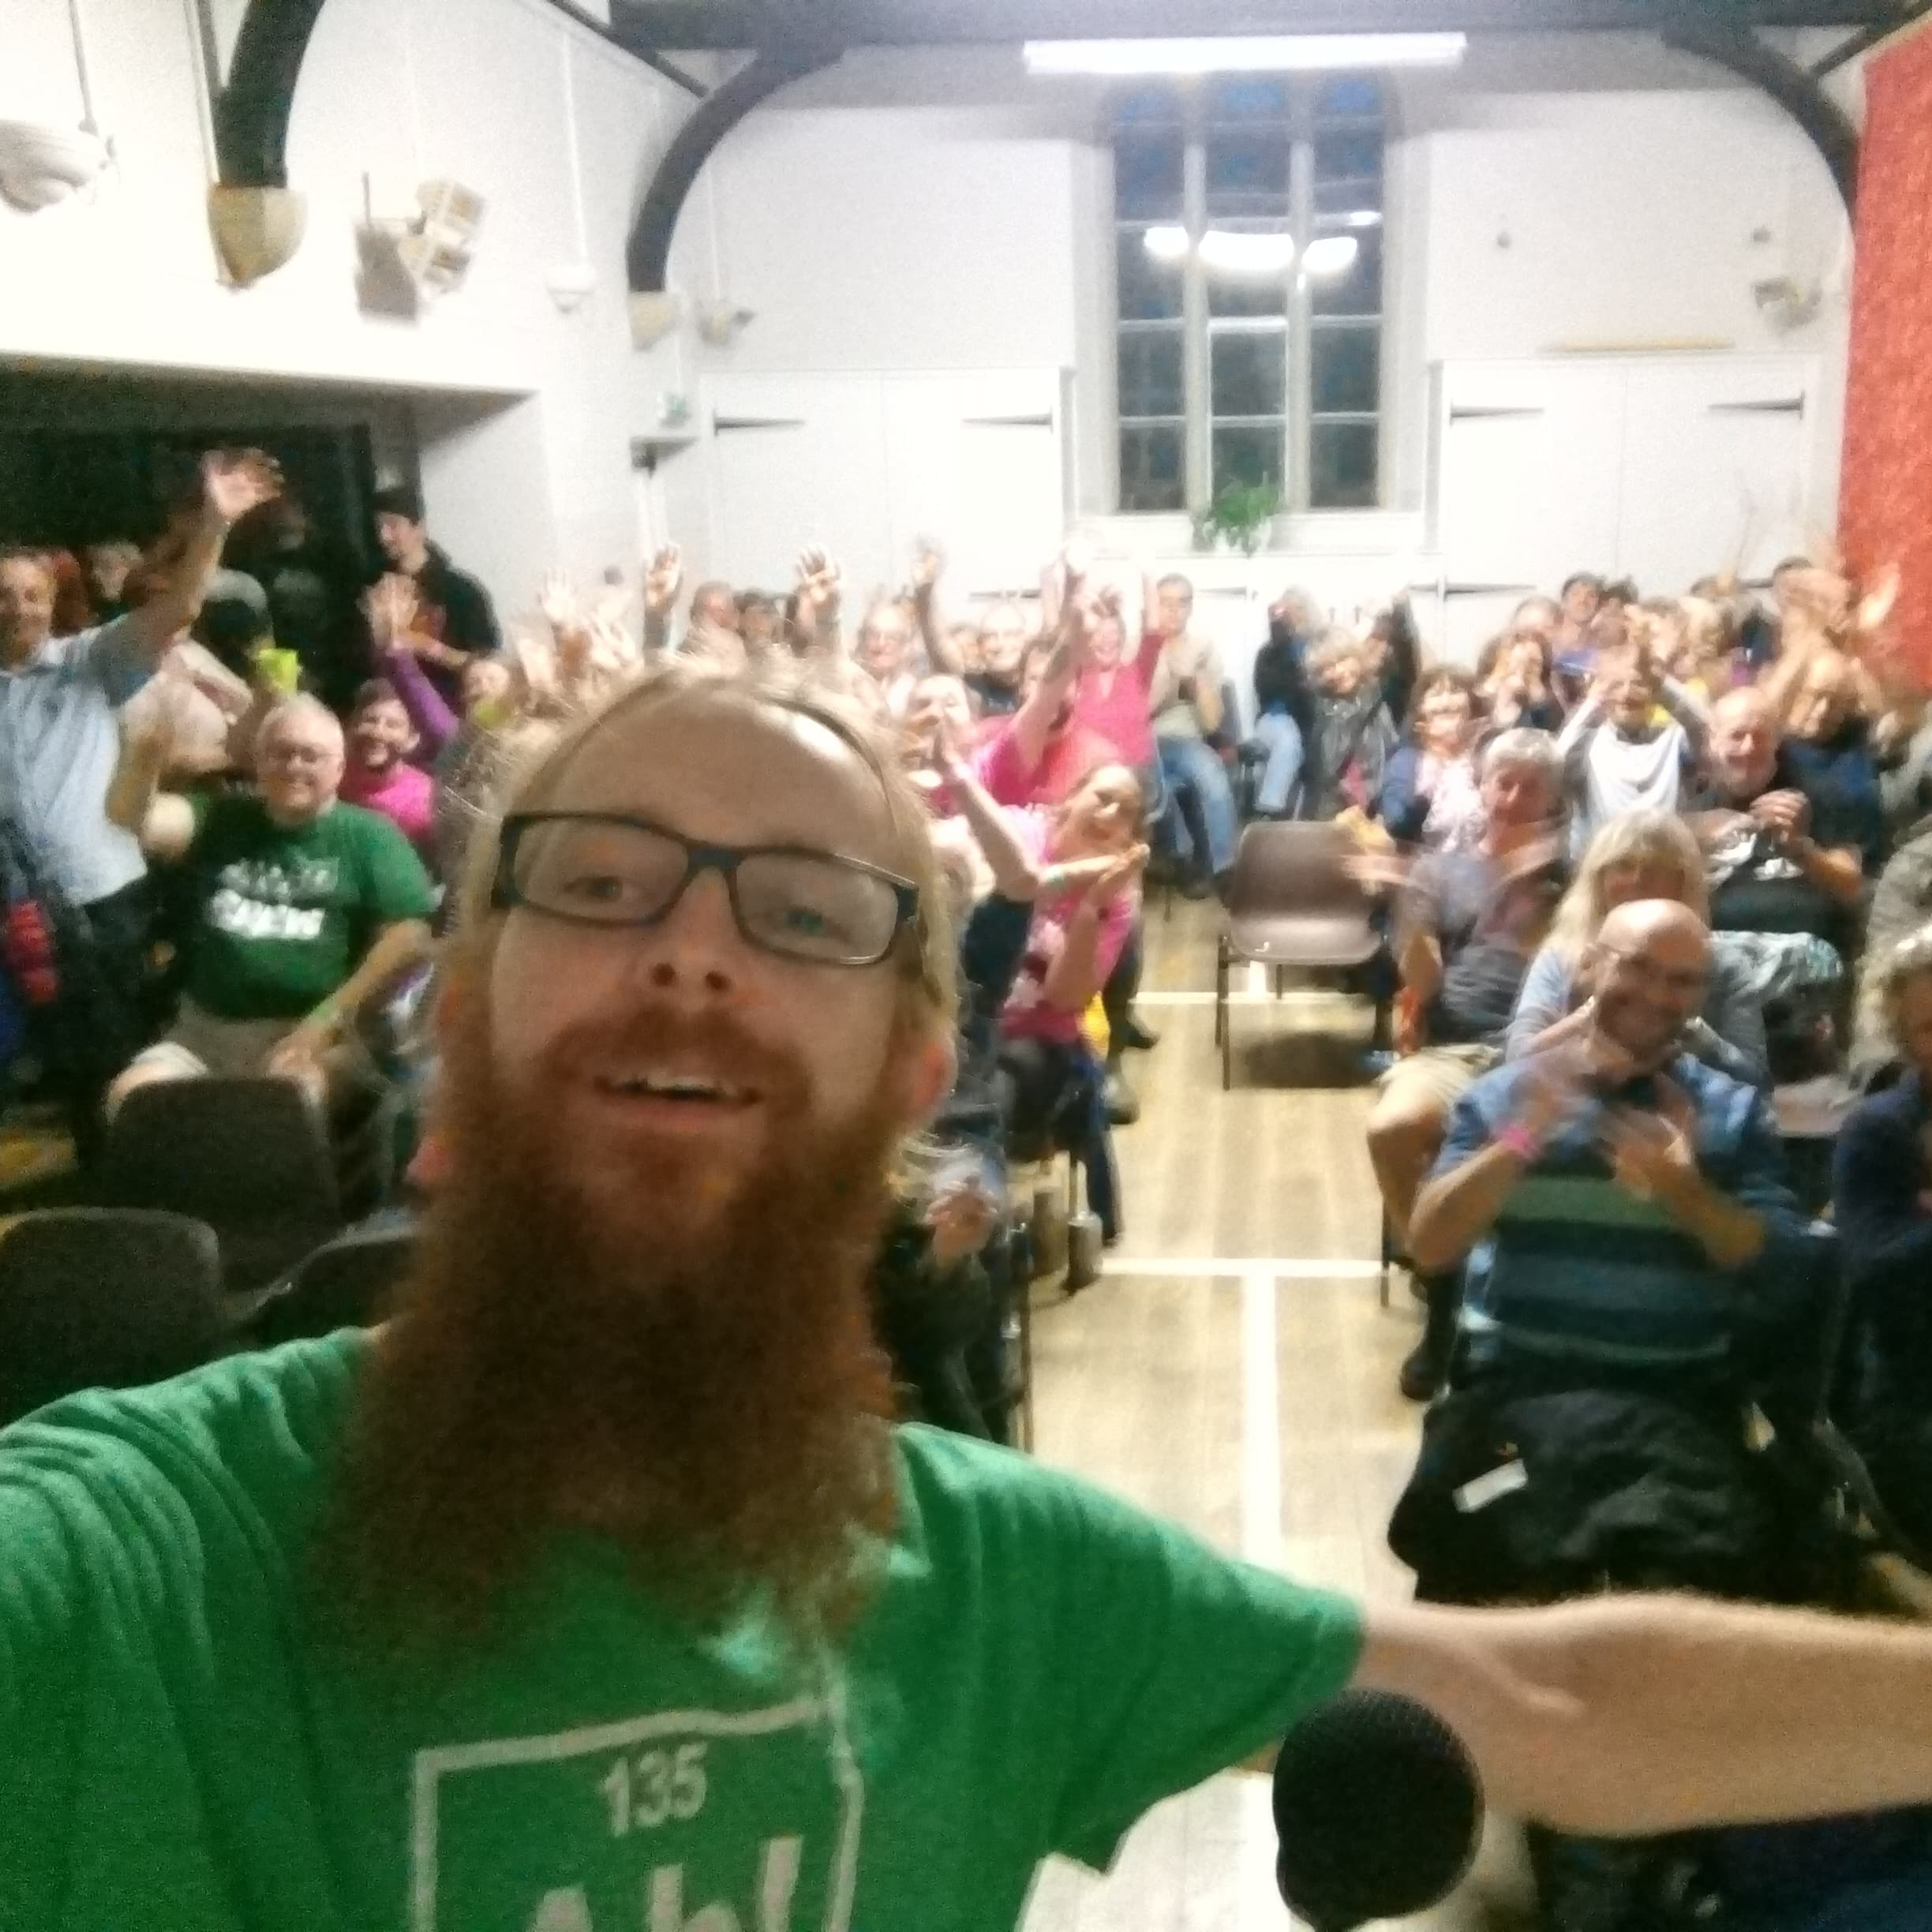 The People's Comedy at Tolpuddle